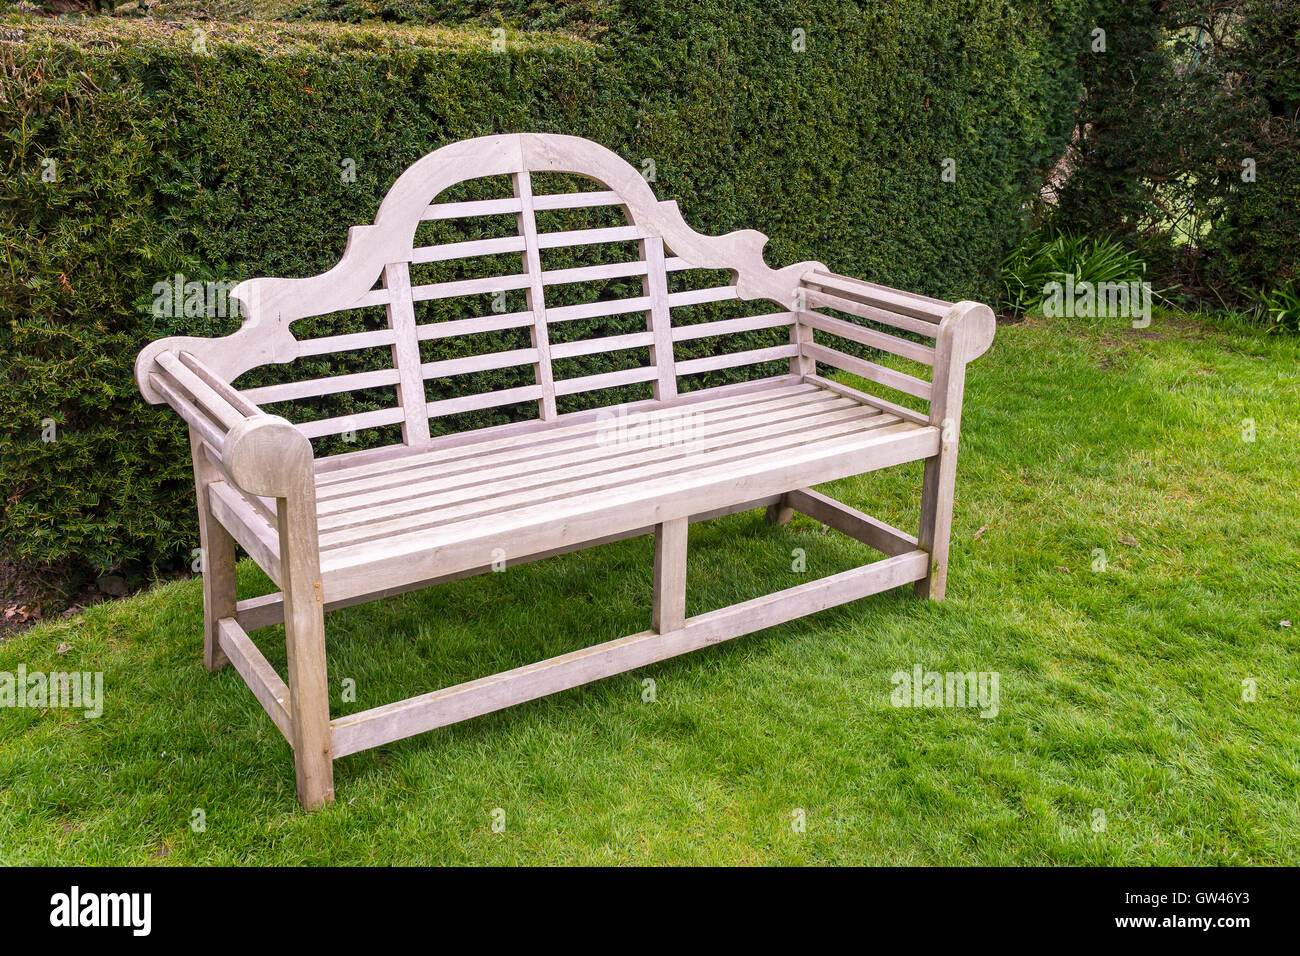 Wooden artisan bench on grassy lawn. Stock Photo